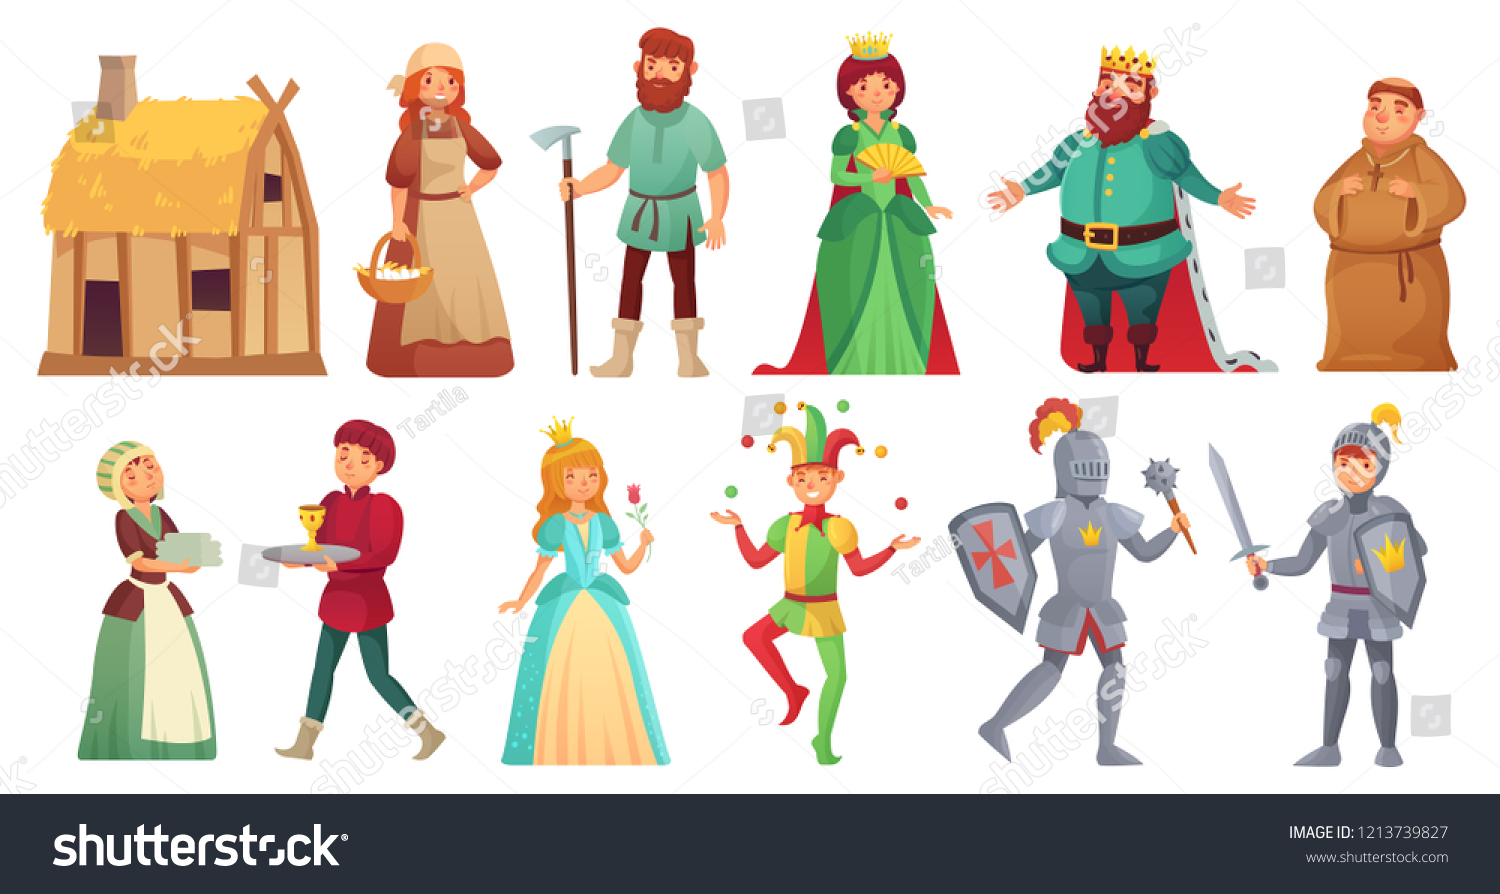 Medieval historical characters. Historic royal court alcazar knights, medieval peasant and king historic costume fairytale ancient aged isolated cartoon vector character icons set